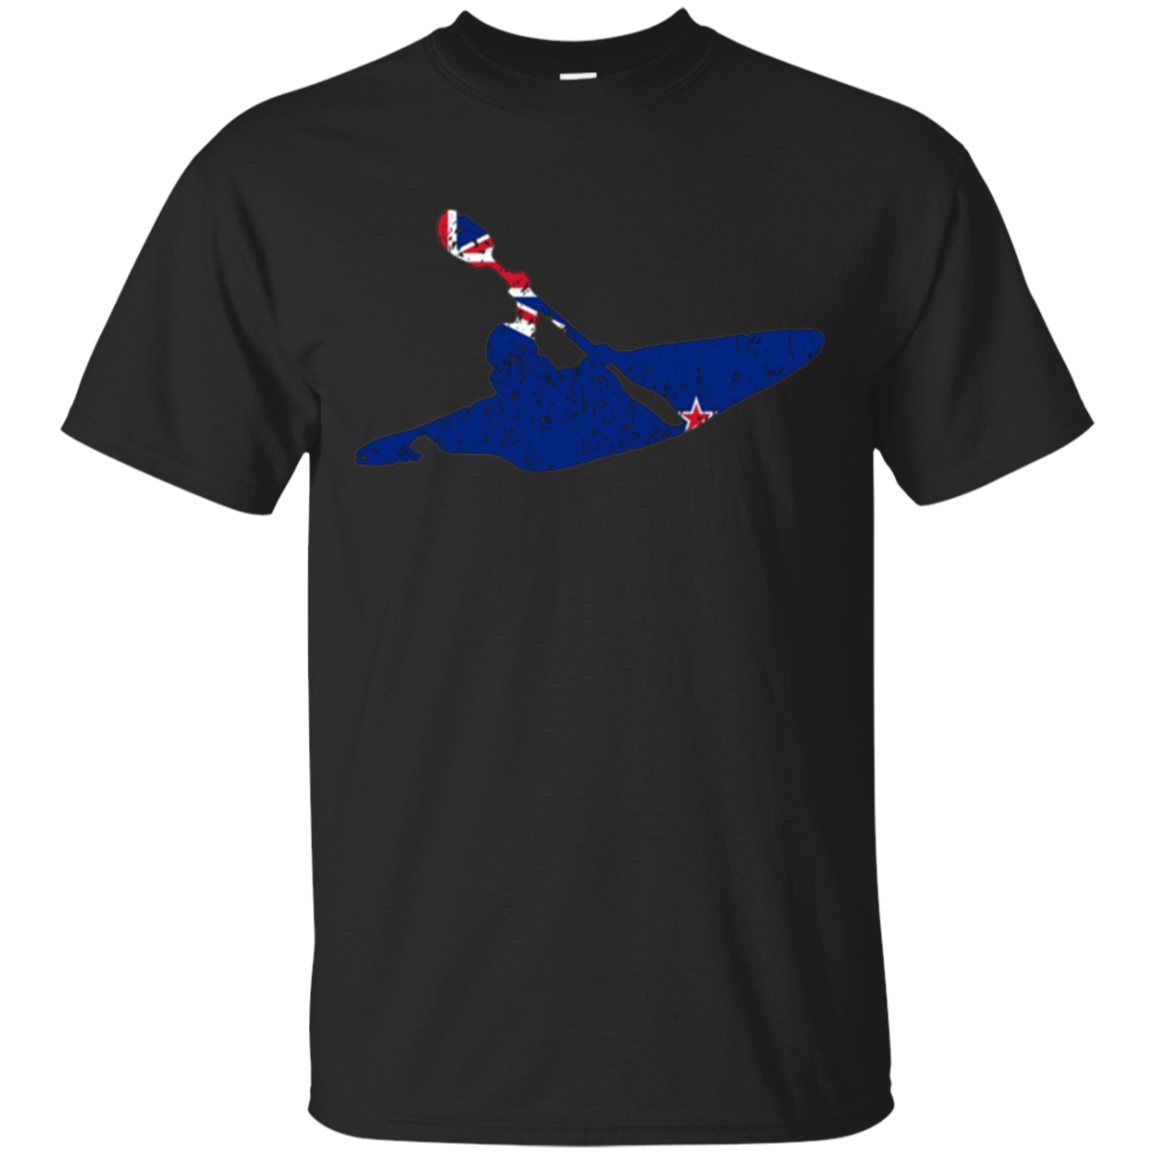 1155x1155 2018 New Zealand Kayaking Kiwi Flag Cool Kayaker Silhouette Shirt